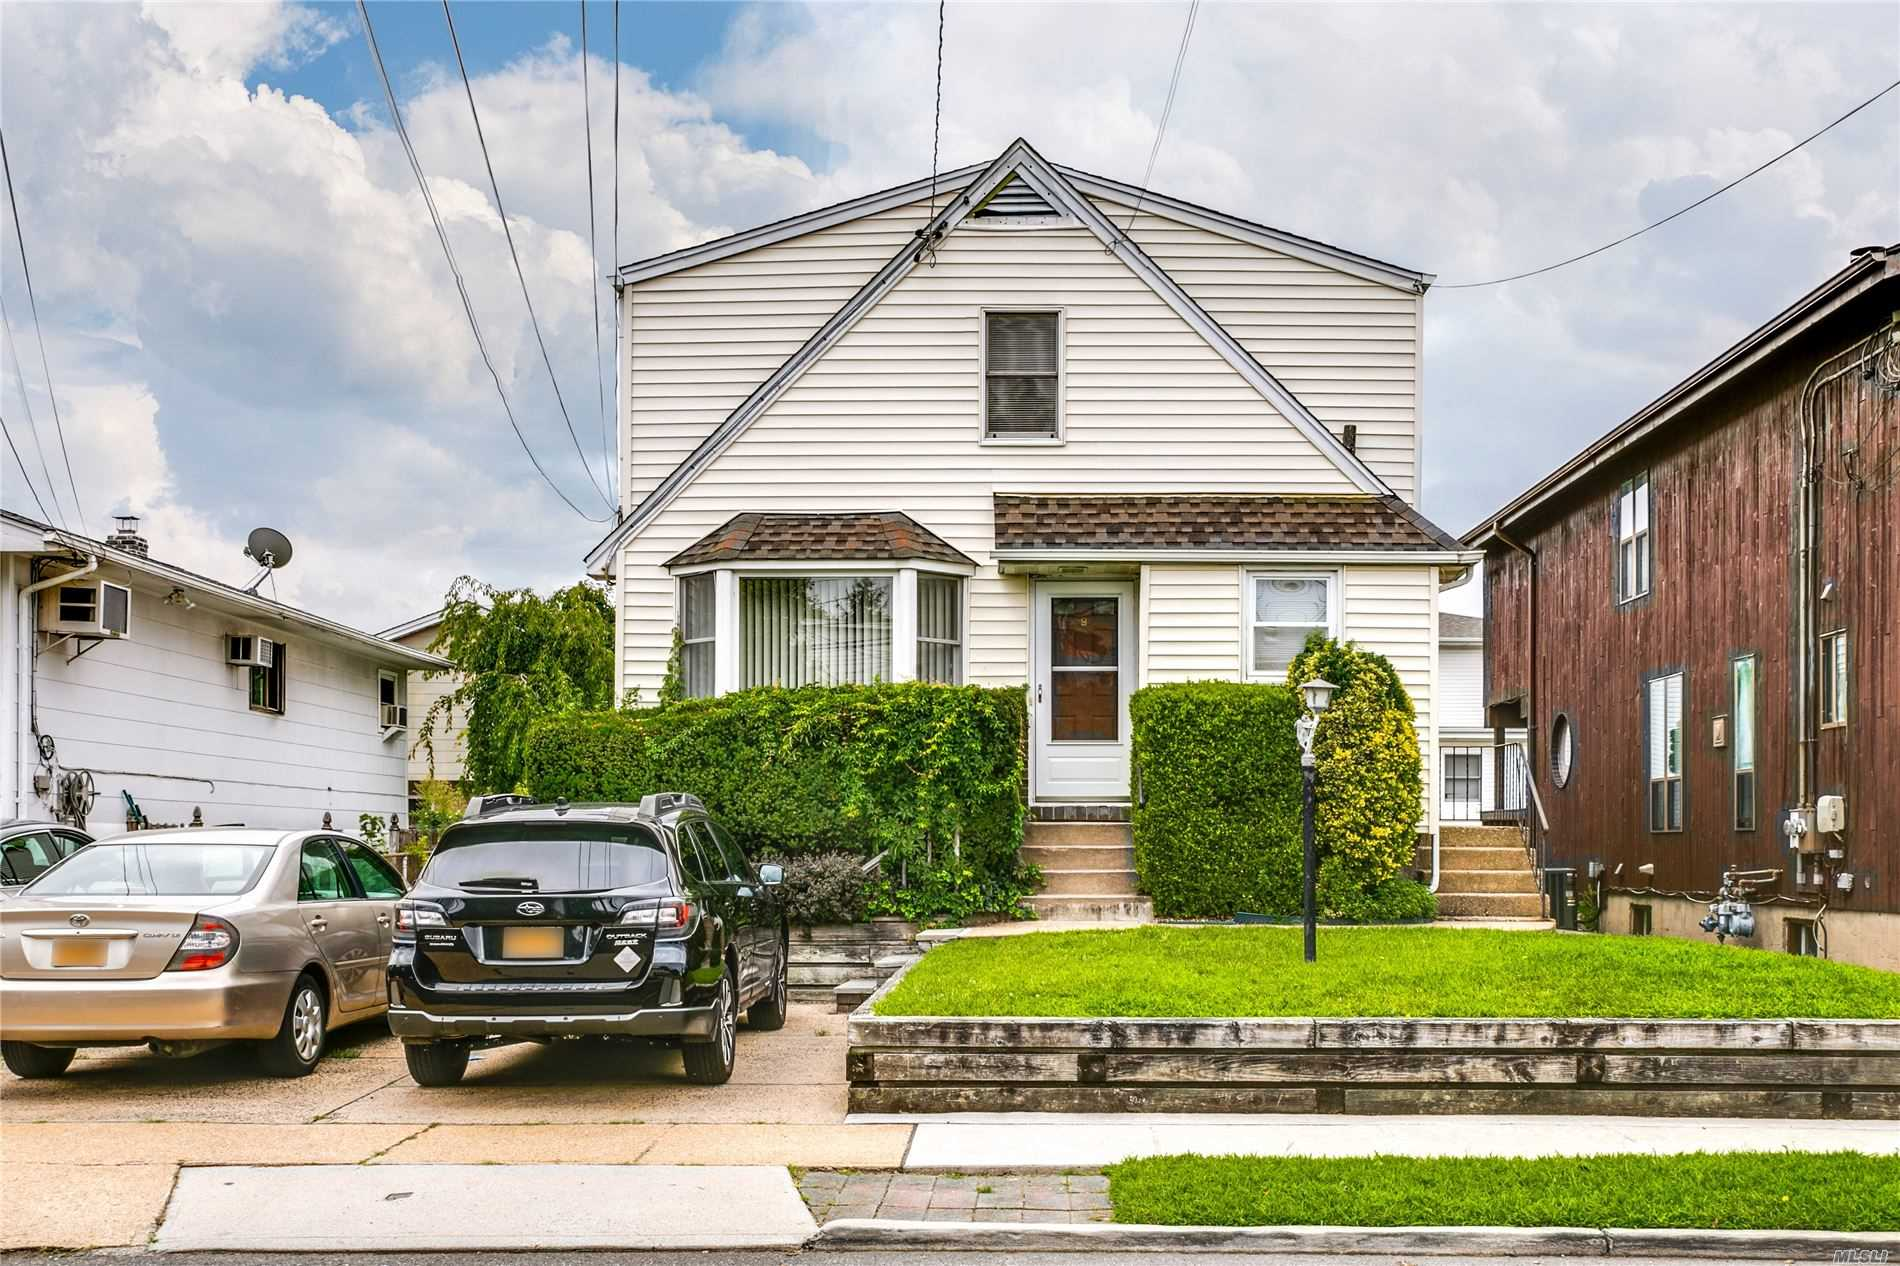 Private side entrance to a sunny 2nd floor 2 bedroom apartment with hardwood floors, kitchen/dining room, living room with built in a/c unit, 2 off street parking spots, heat/hot water/gas included. Close to Manorhaven Park, Beach & Pool. No Laundry. Storage allowed in garage.